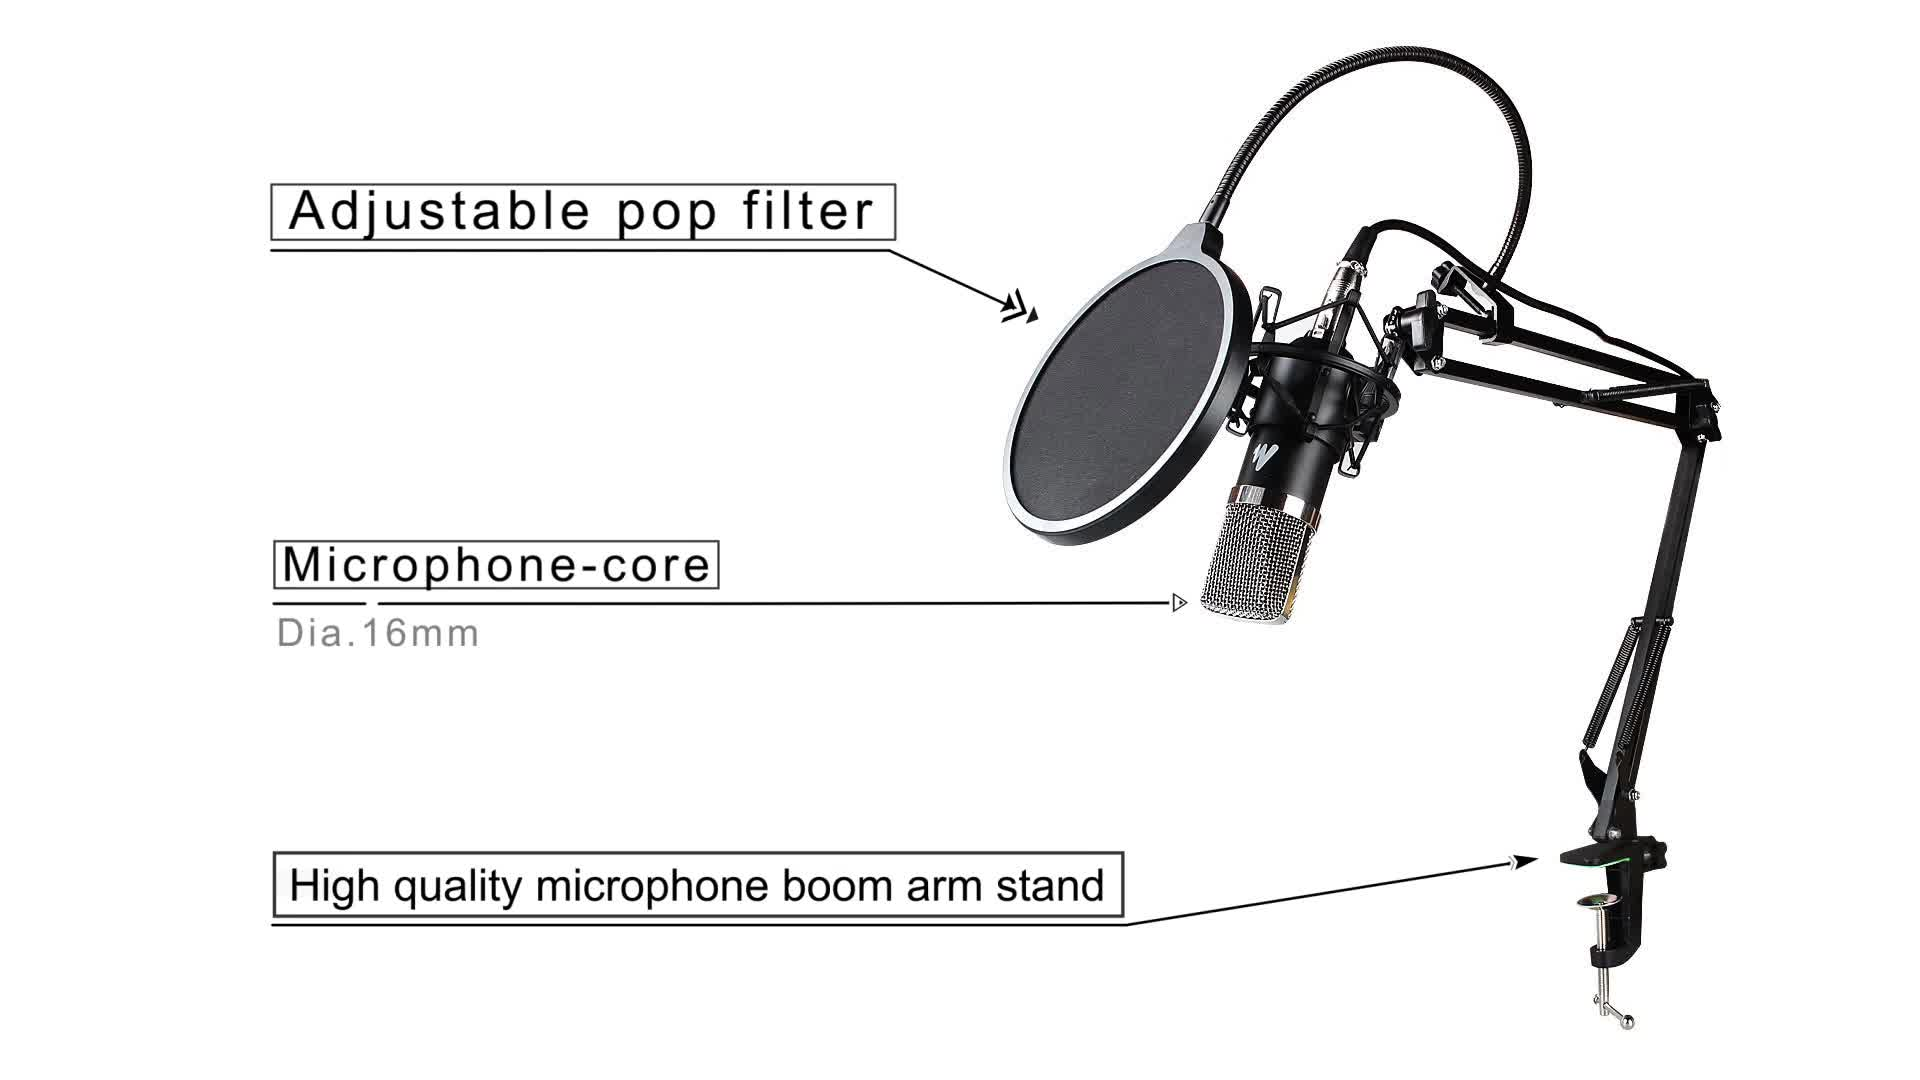 Top quality voice recording podcasting studio condenser microphone